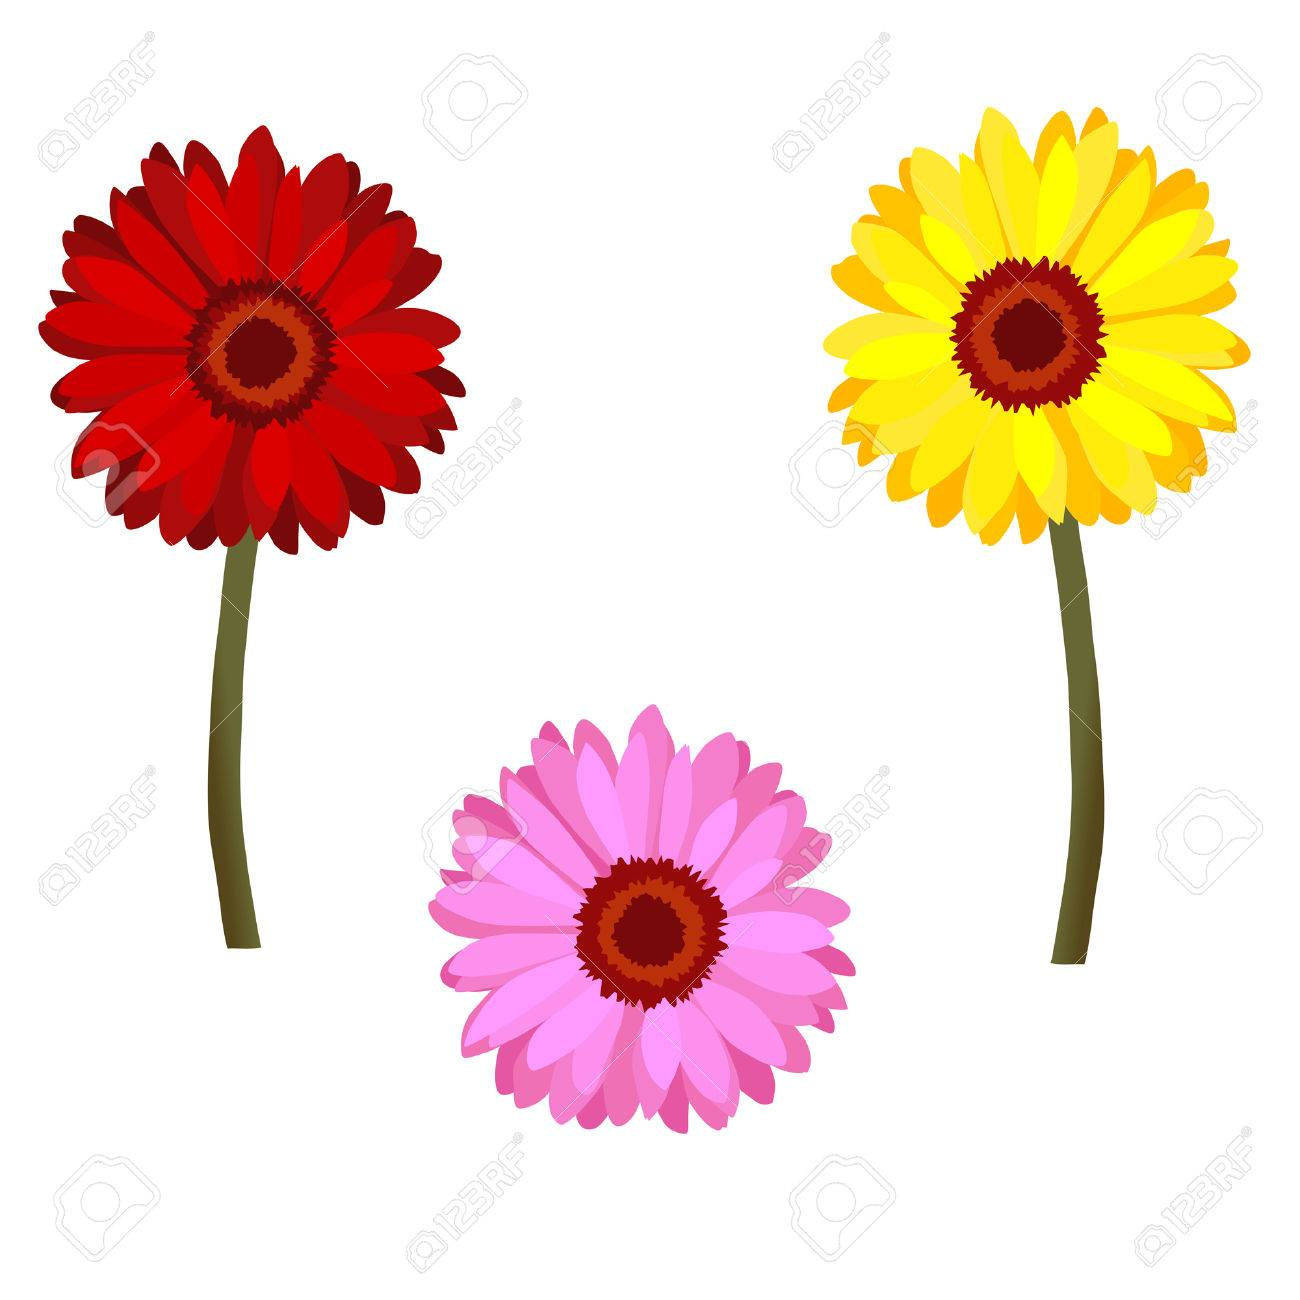 set of daisy flowers royalty free cliparts vectors and stock